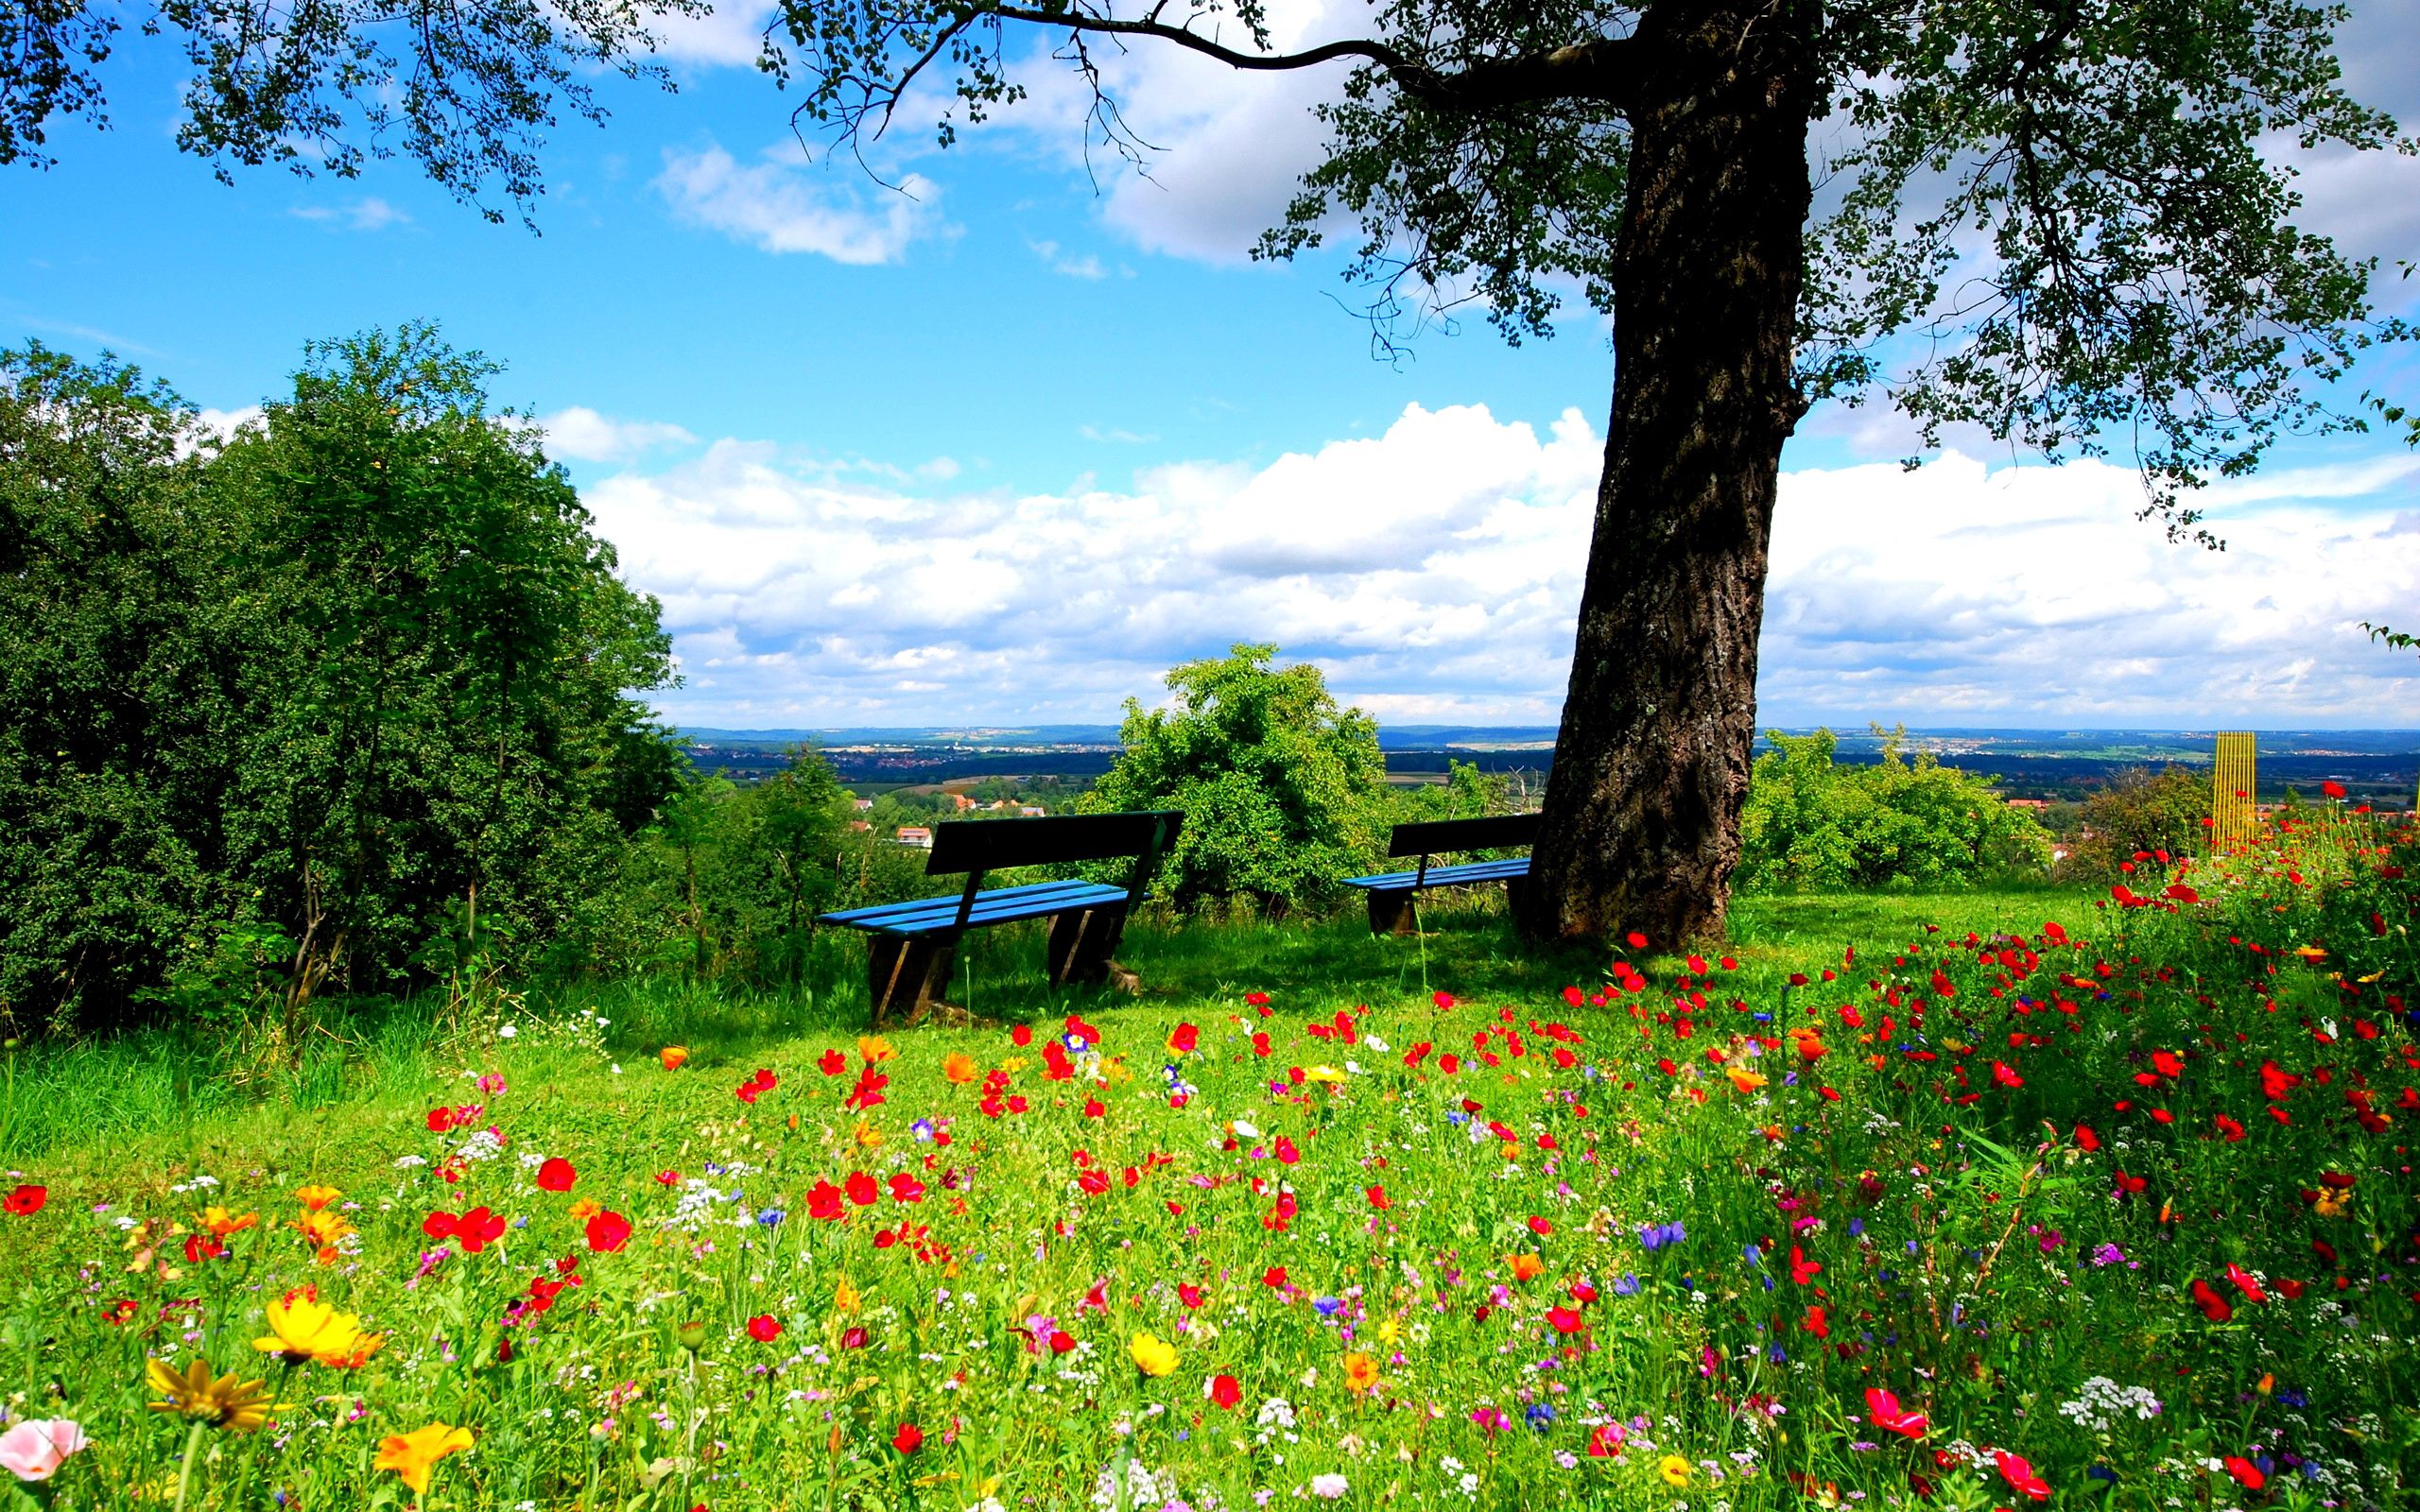 65910 download wallpaper Nature, Trees, Flowers, Benches screensavers and pictures for free